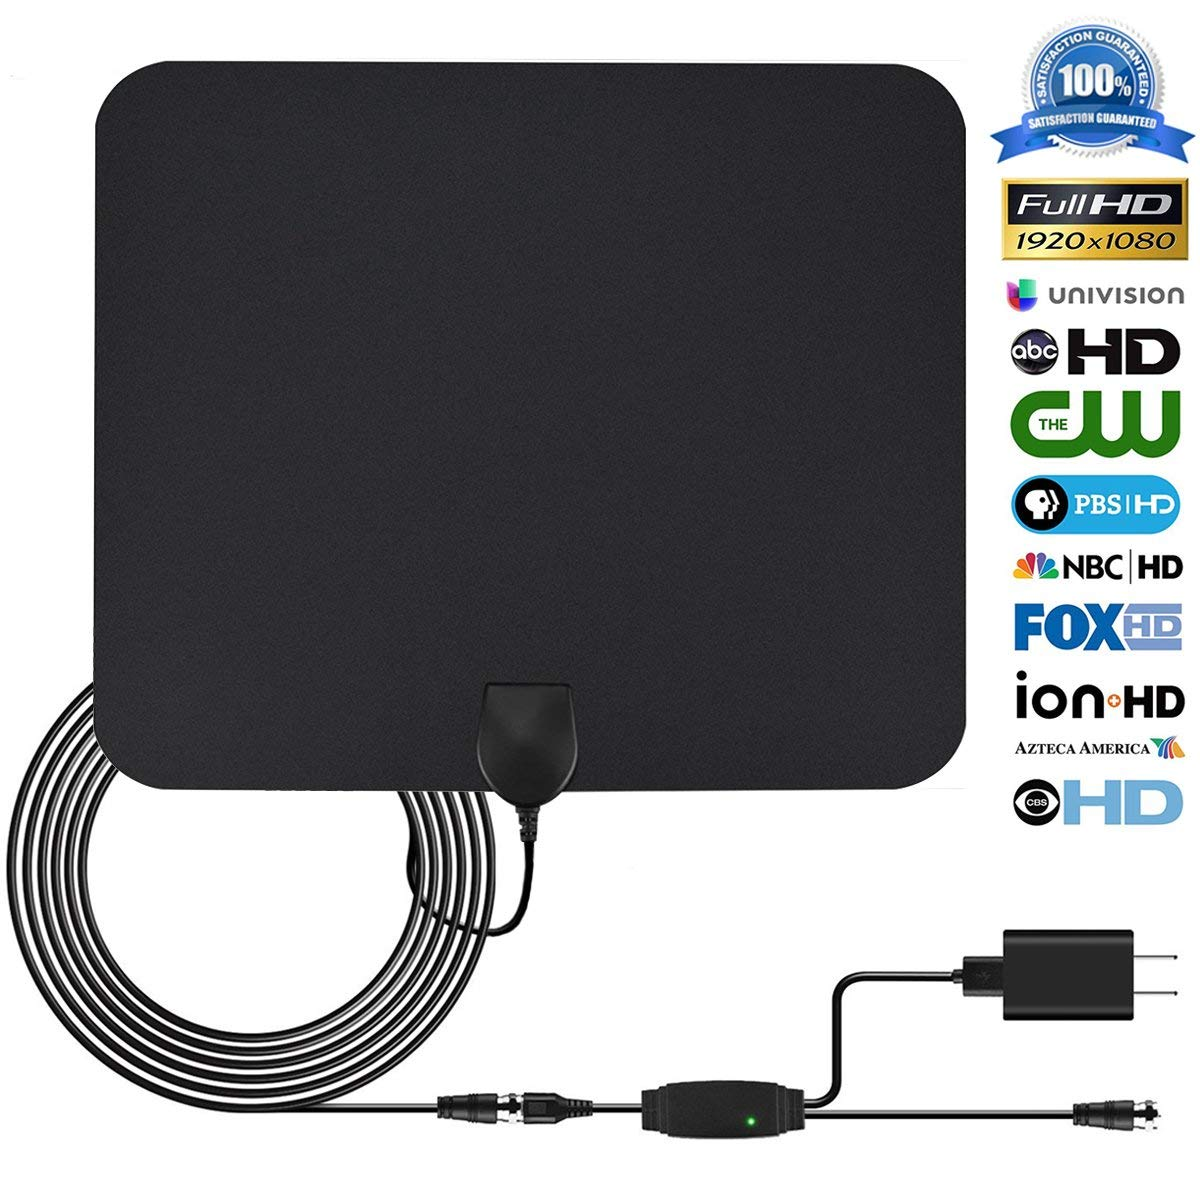 Indoor Digital TV Antenna,POWKER HDTV Antenna Amplified 50-80 Miles Long Range Detachable Amplifier Signal Booster for 1080P with 16.5ft High Reception Coax Cable and USB Power Supply